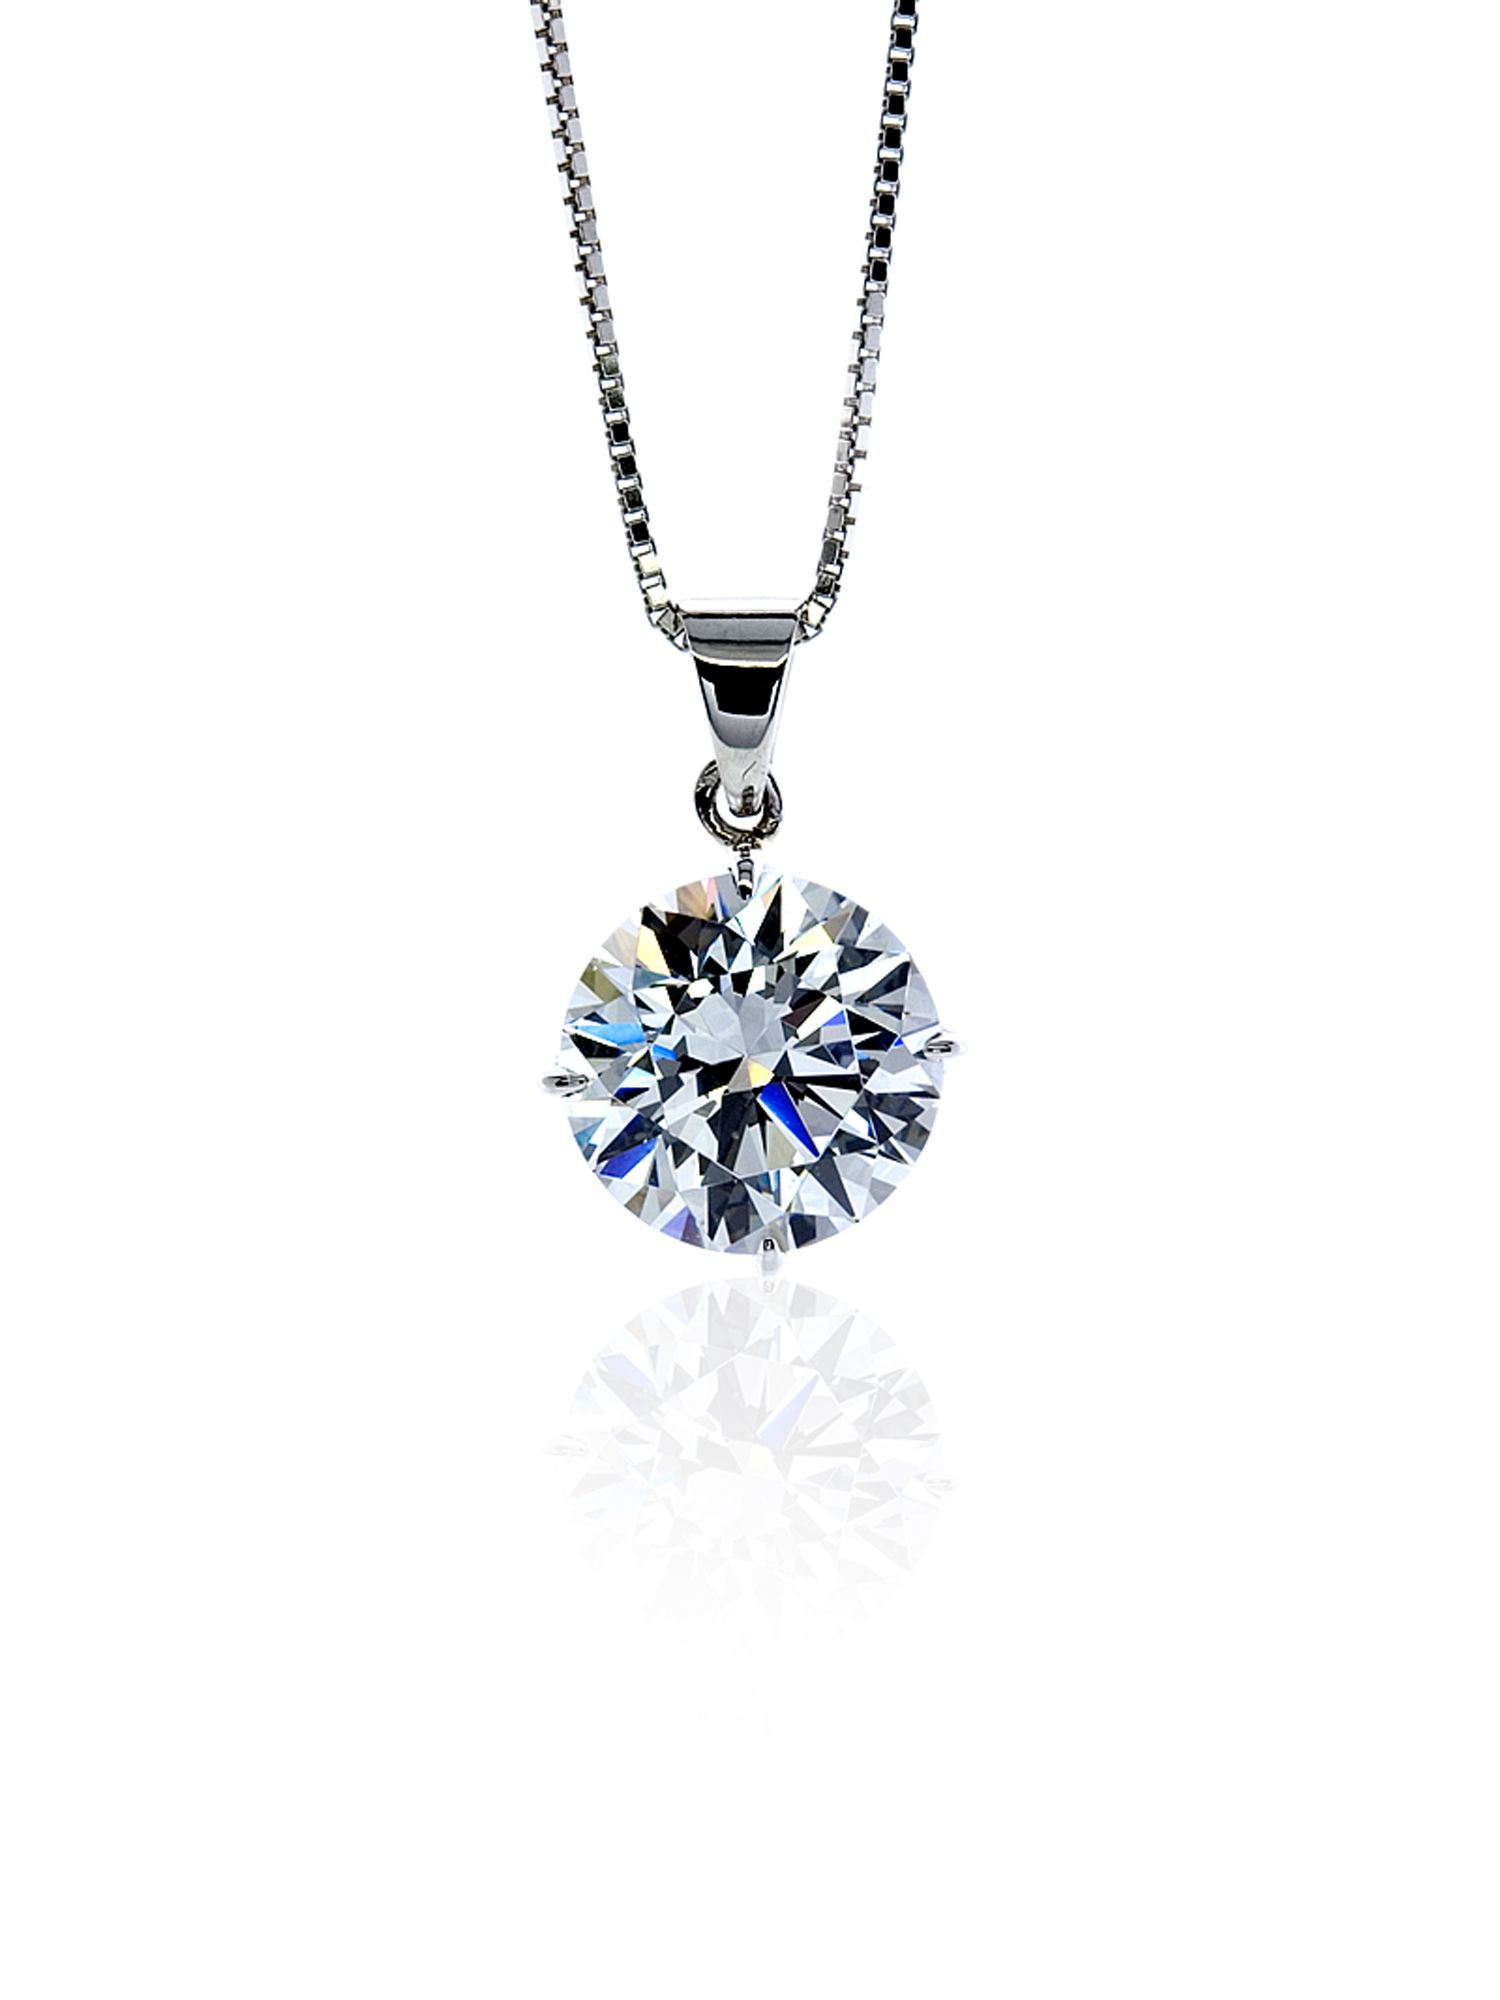 1ct Round Solitaire Pendant with Chain